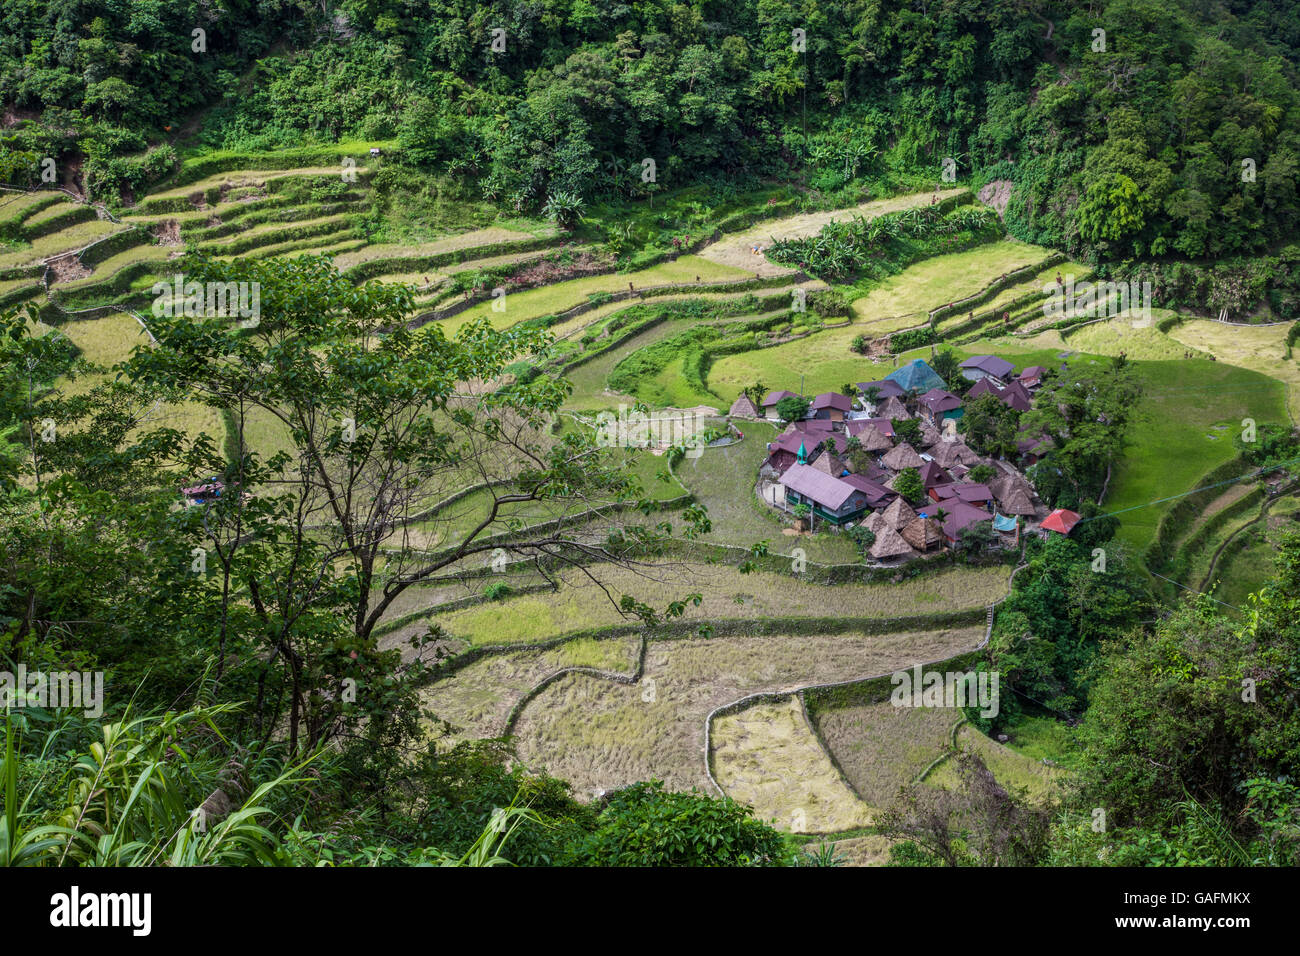 Bangaan rice terraces in Banaue. The rice terraces of the Ifugao have been built to follow the contours of the mountains. - Stock Image